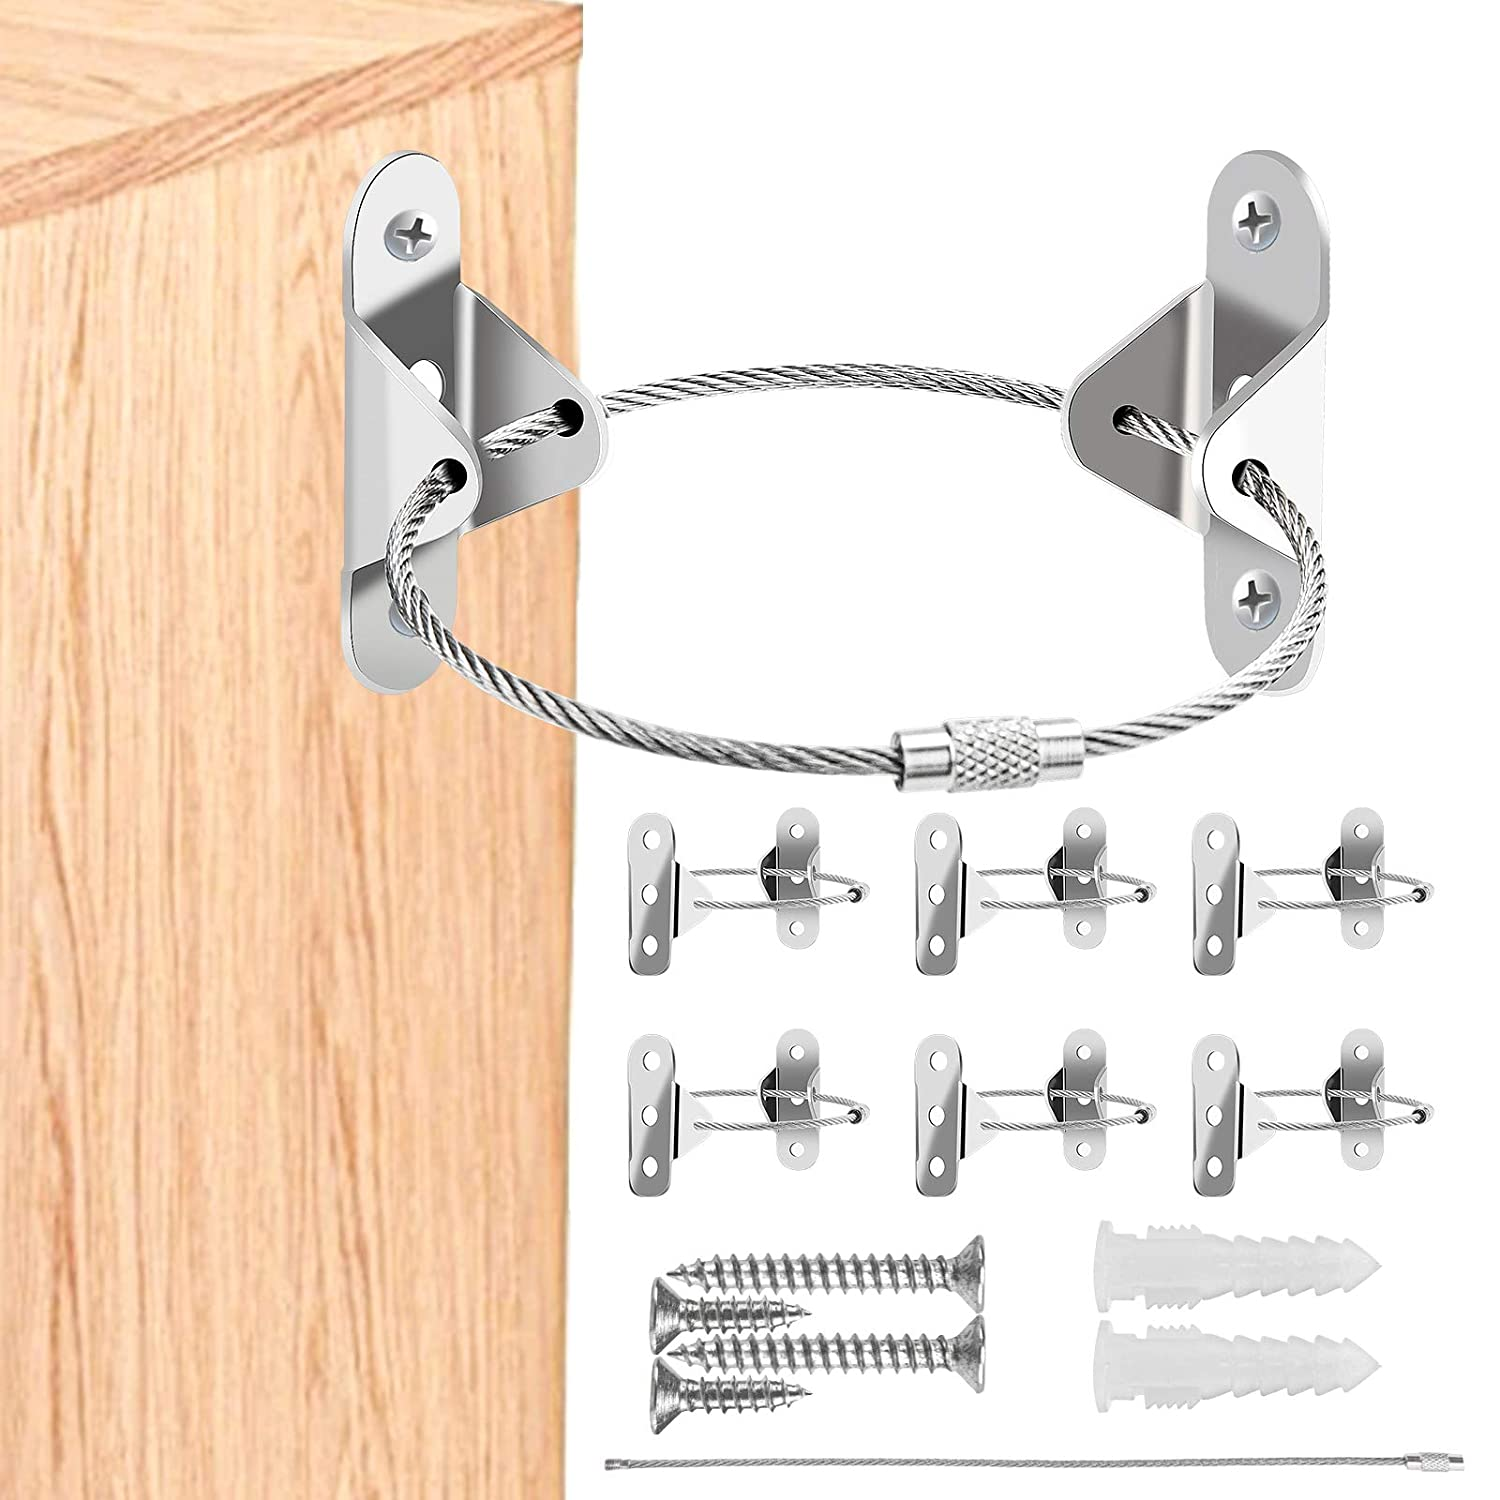 6 Pack Furniture Anchors, Premium Furniture Anchors for Baby Proofing, Secure 400 Pound Anti Tip Bracket for Furniture